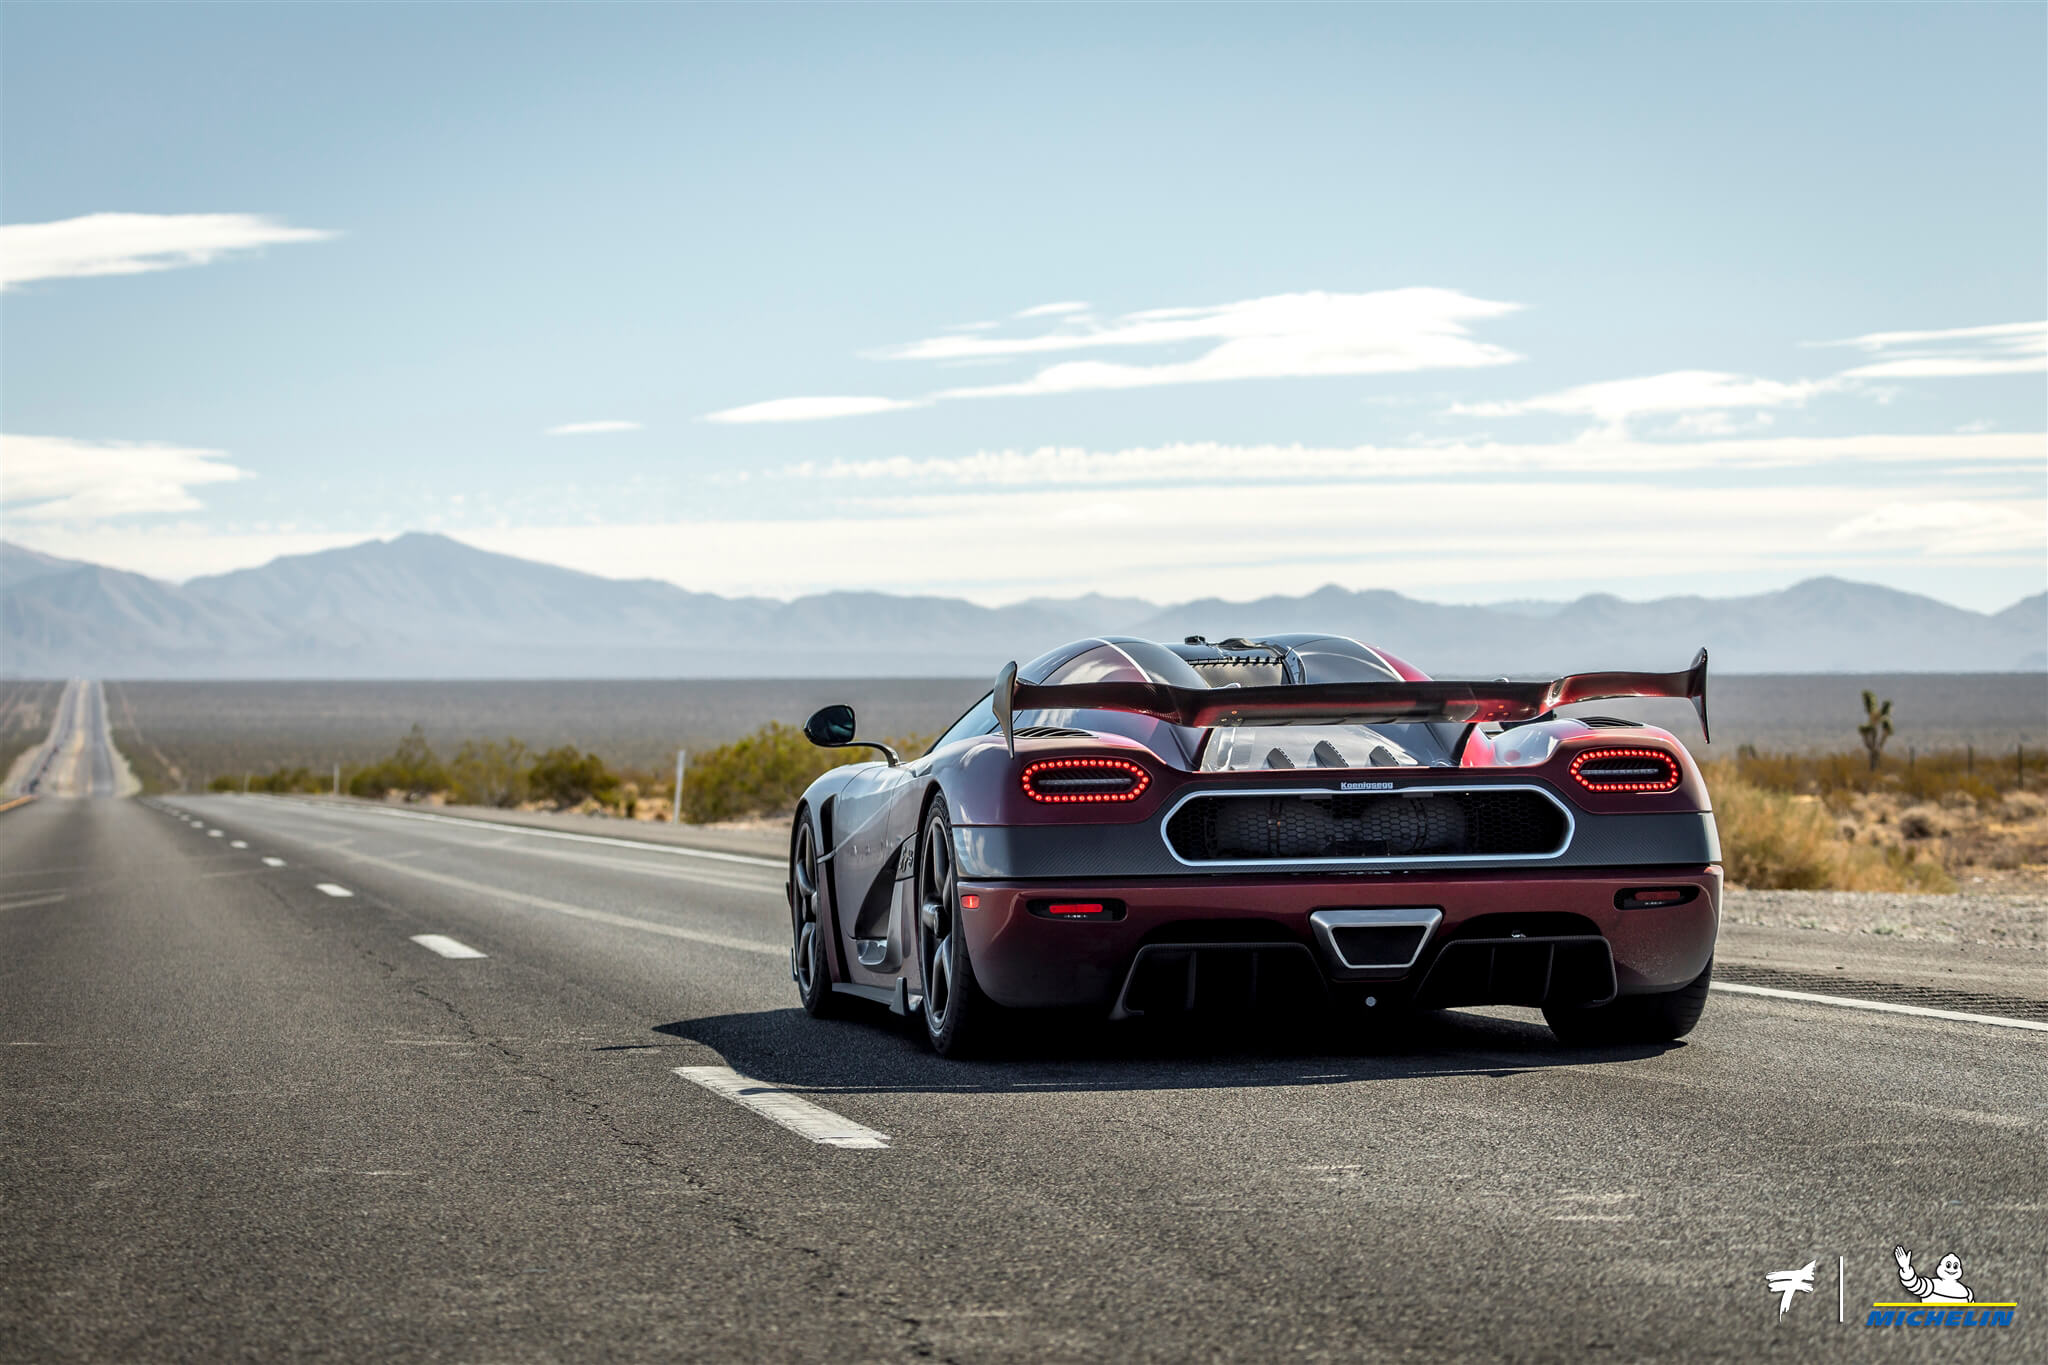 Exotic Fastest Car In The World Koenigsegg Agera Rs 278 Mph In Nevada Cars247